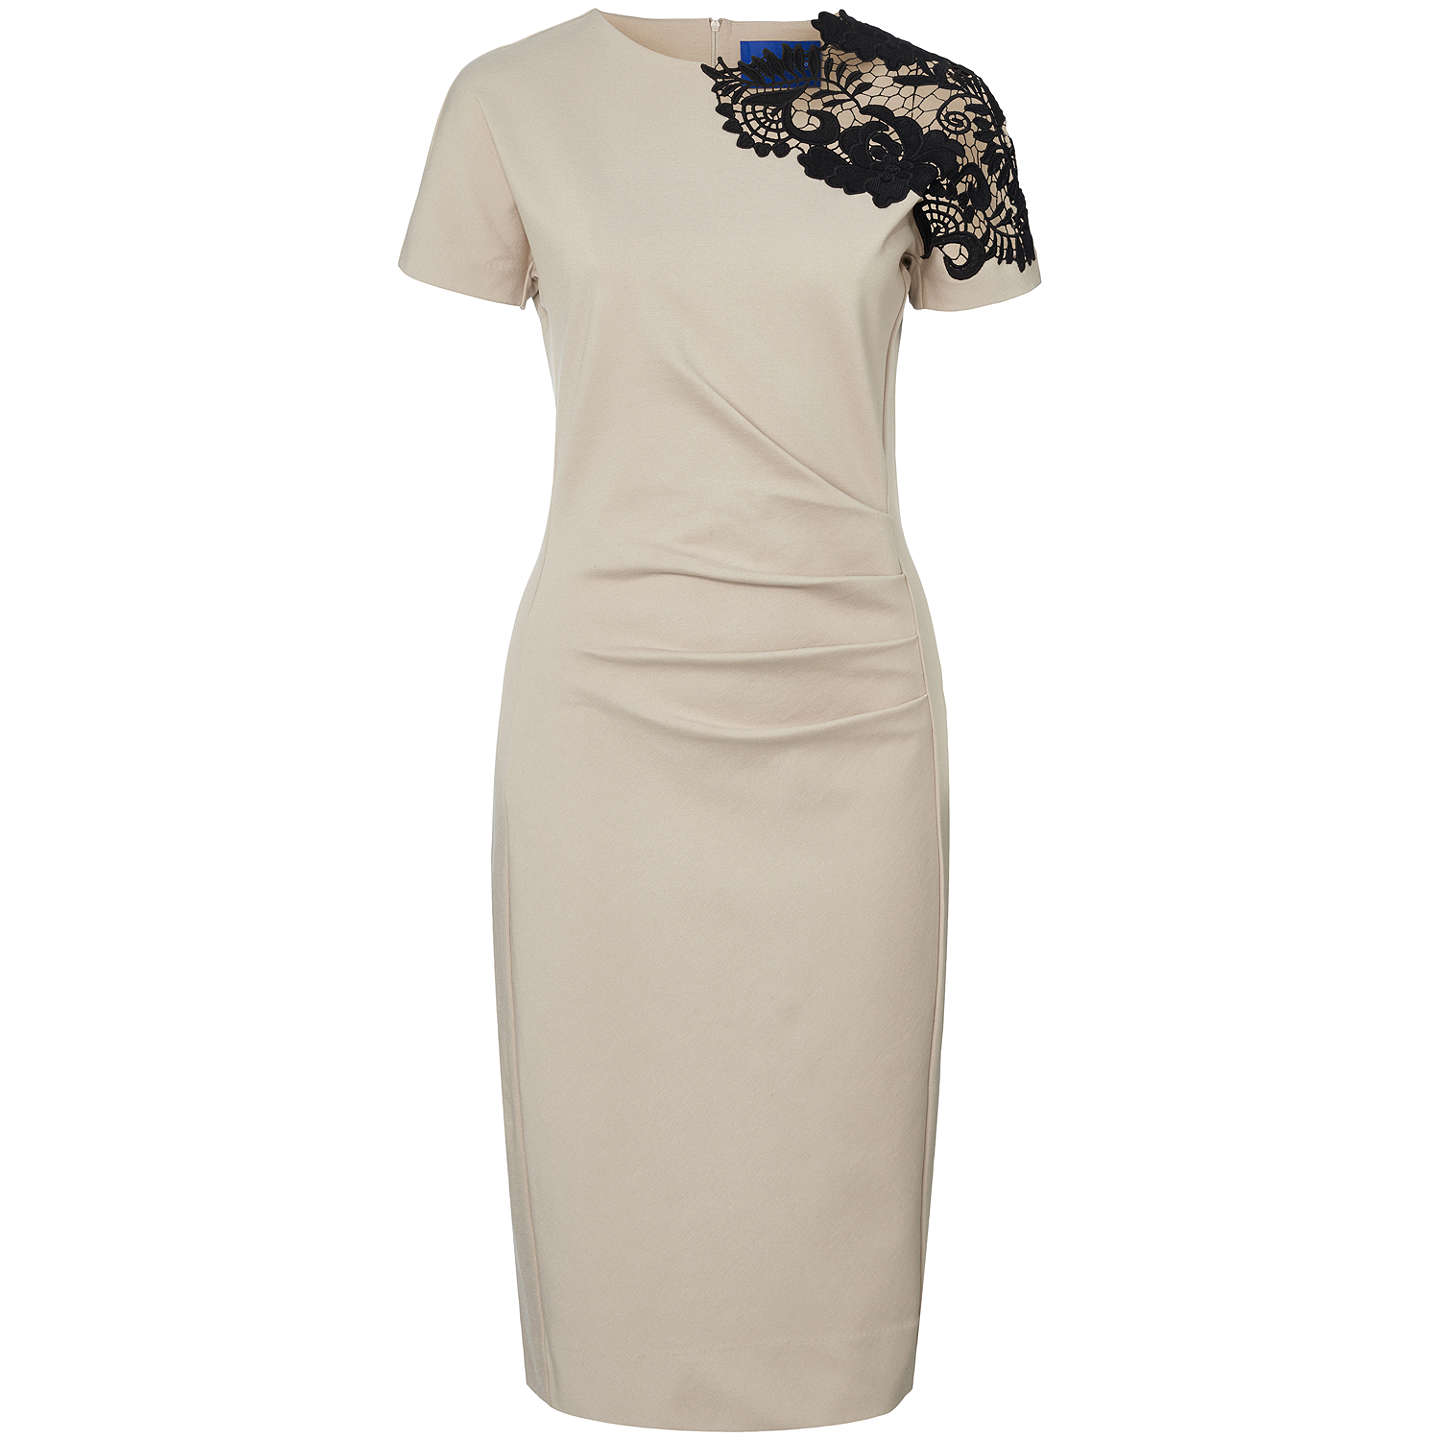 BuyWinser London Guipure Lace Miracle Dress, Stone, 6 Online at johnlewis.com